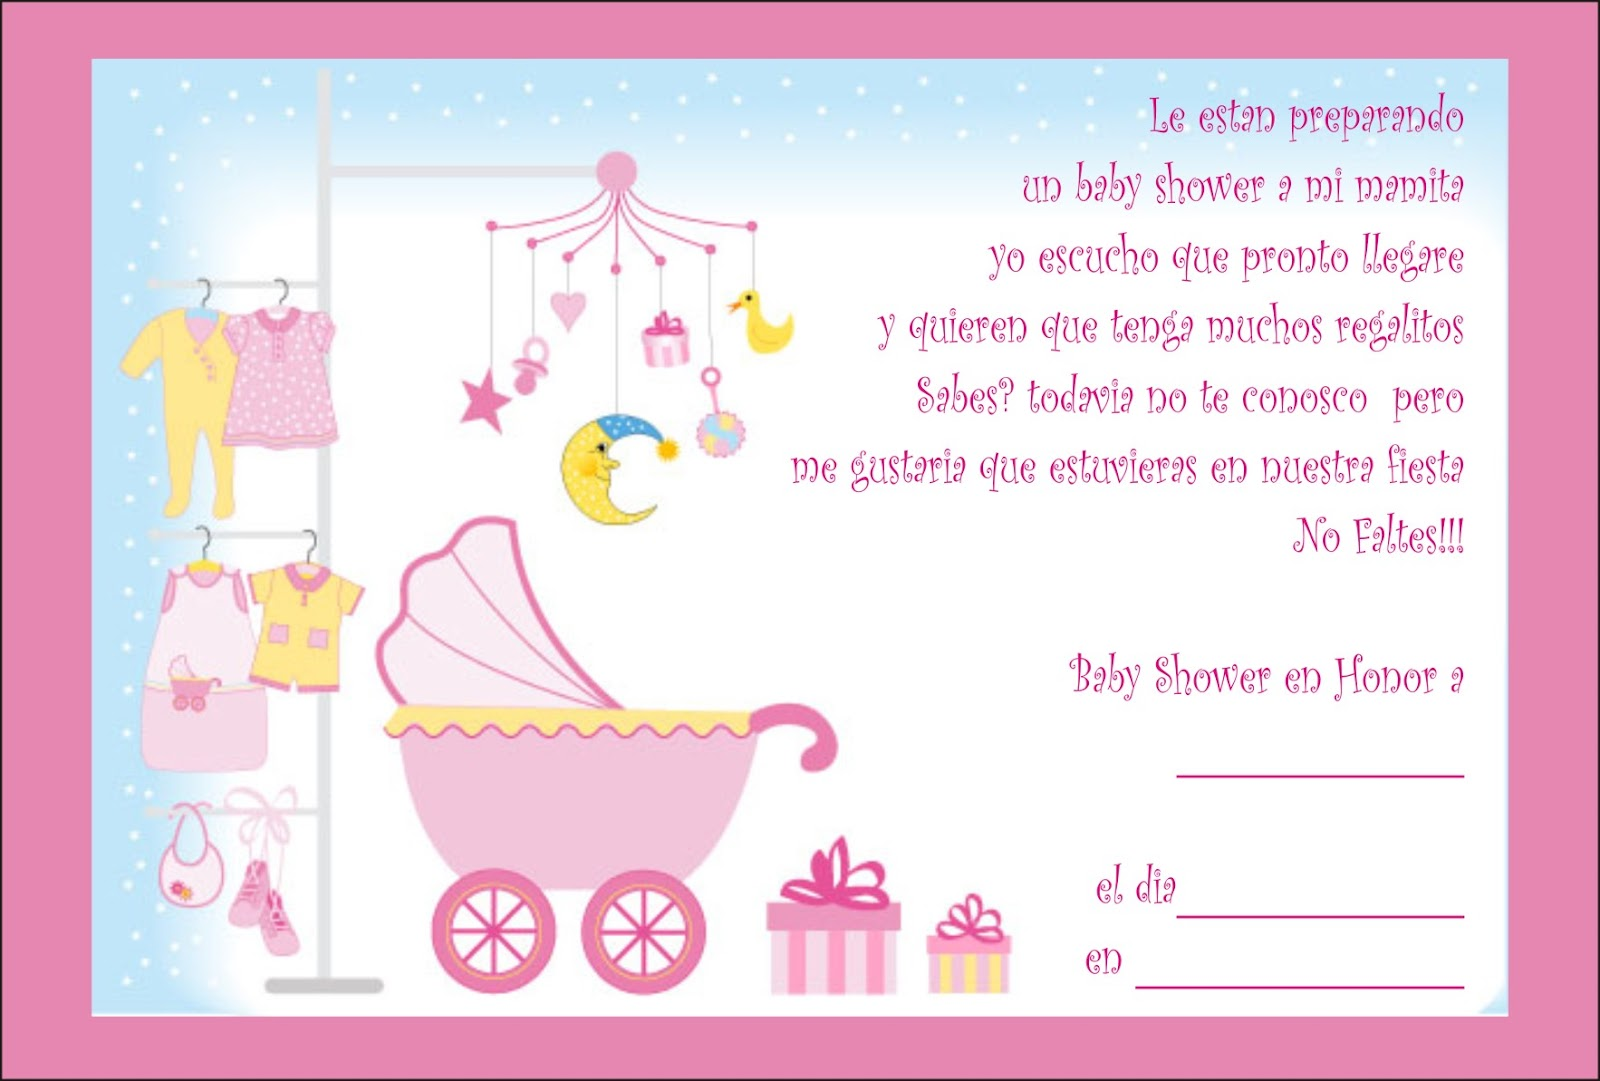 Invitaciones para baby shower also adornos para baby shower also decoracion para baby shower